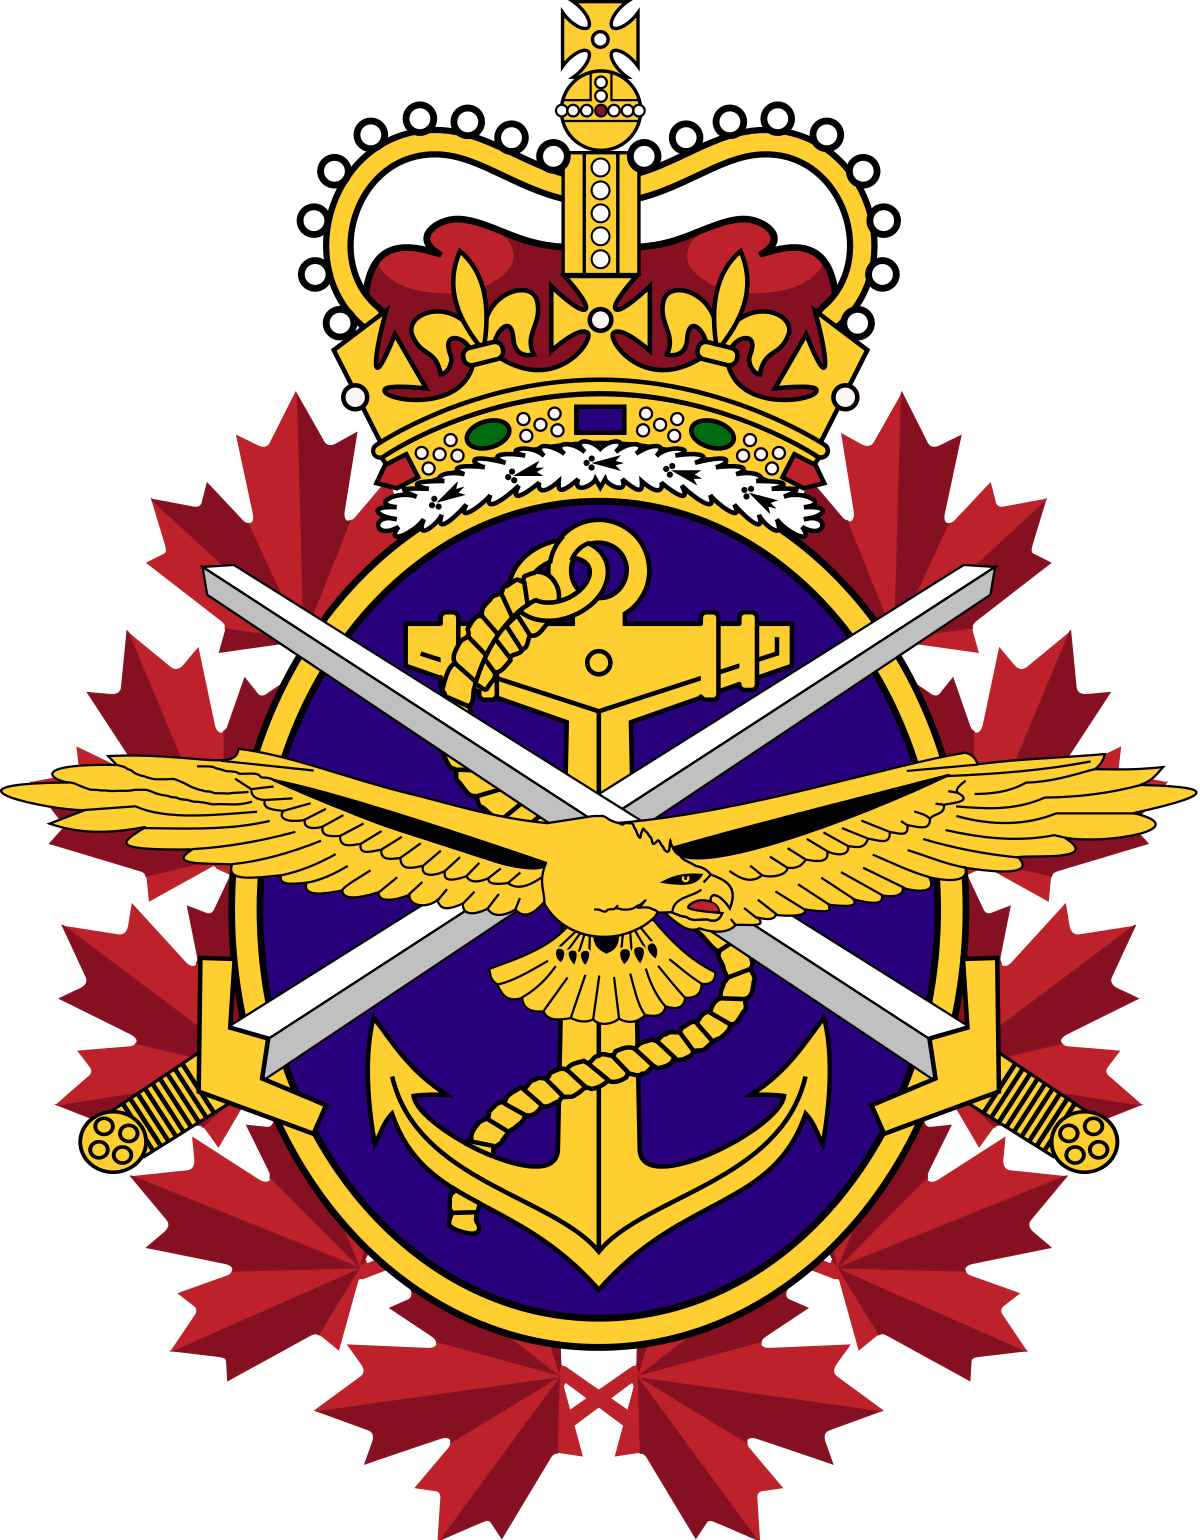 Armed forces wikipedia . Missions clipart citizenship canadian